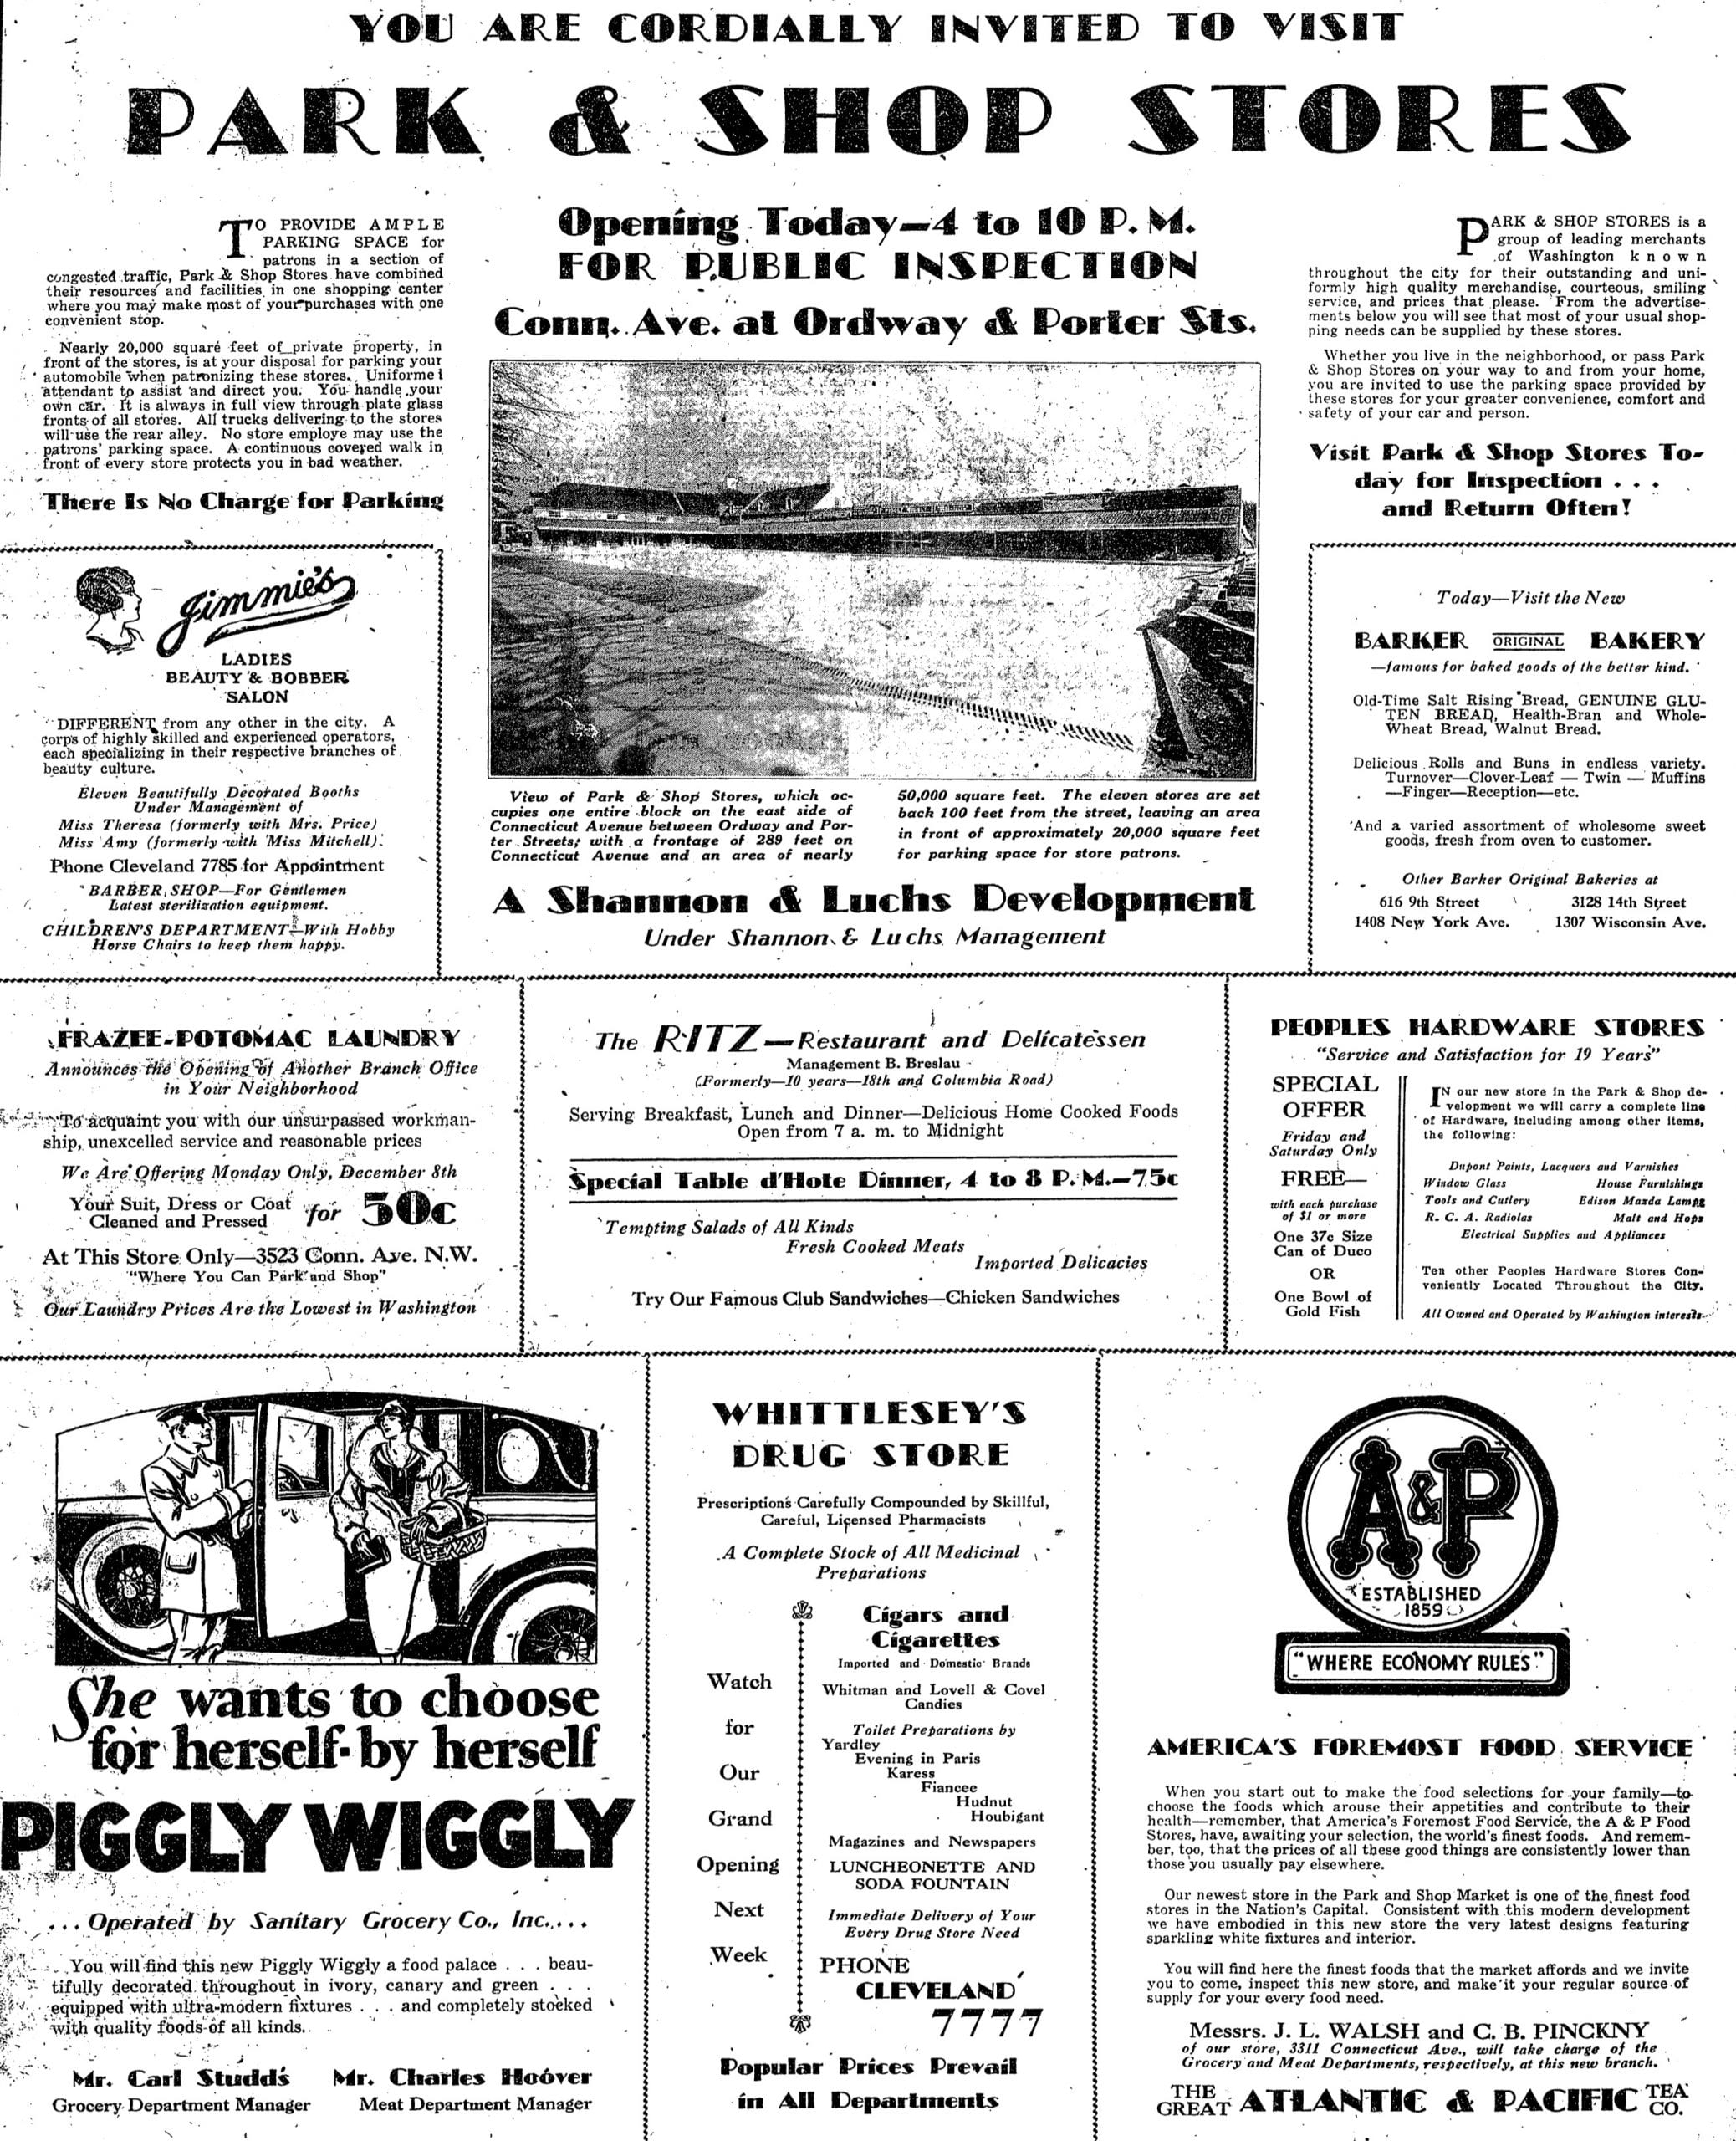 Park and Shop opening advertisement - Washington Post (December 5th, 1930)